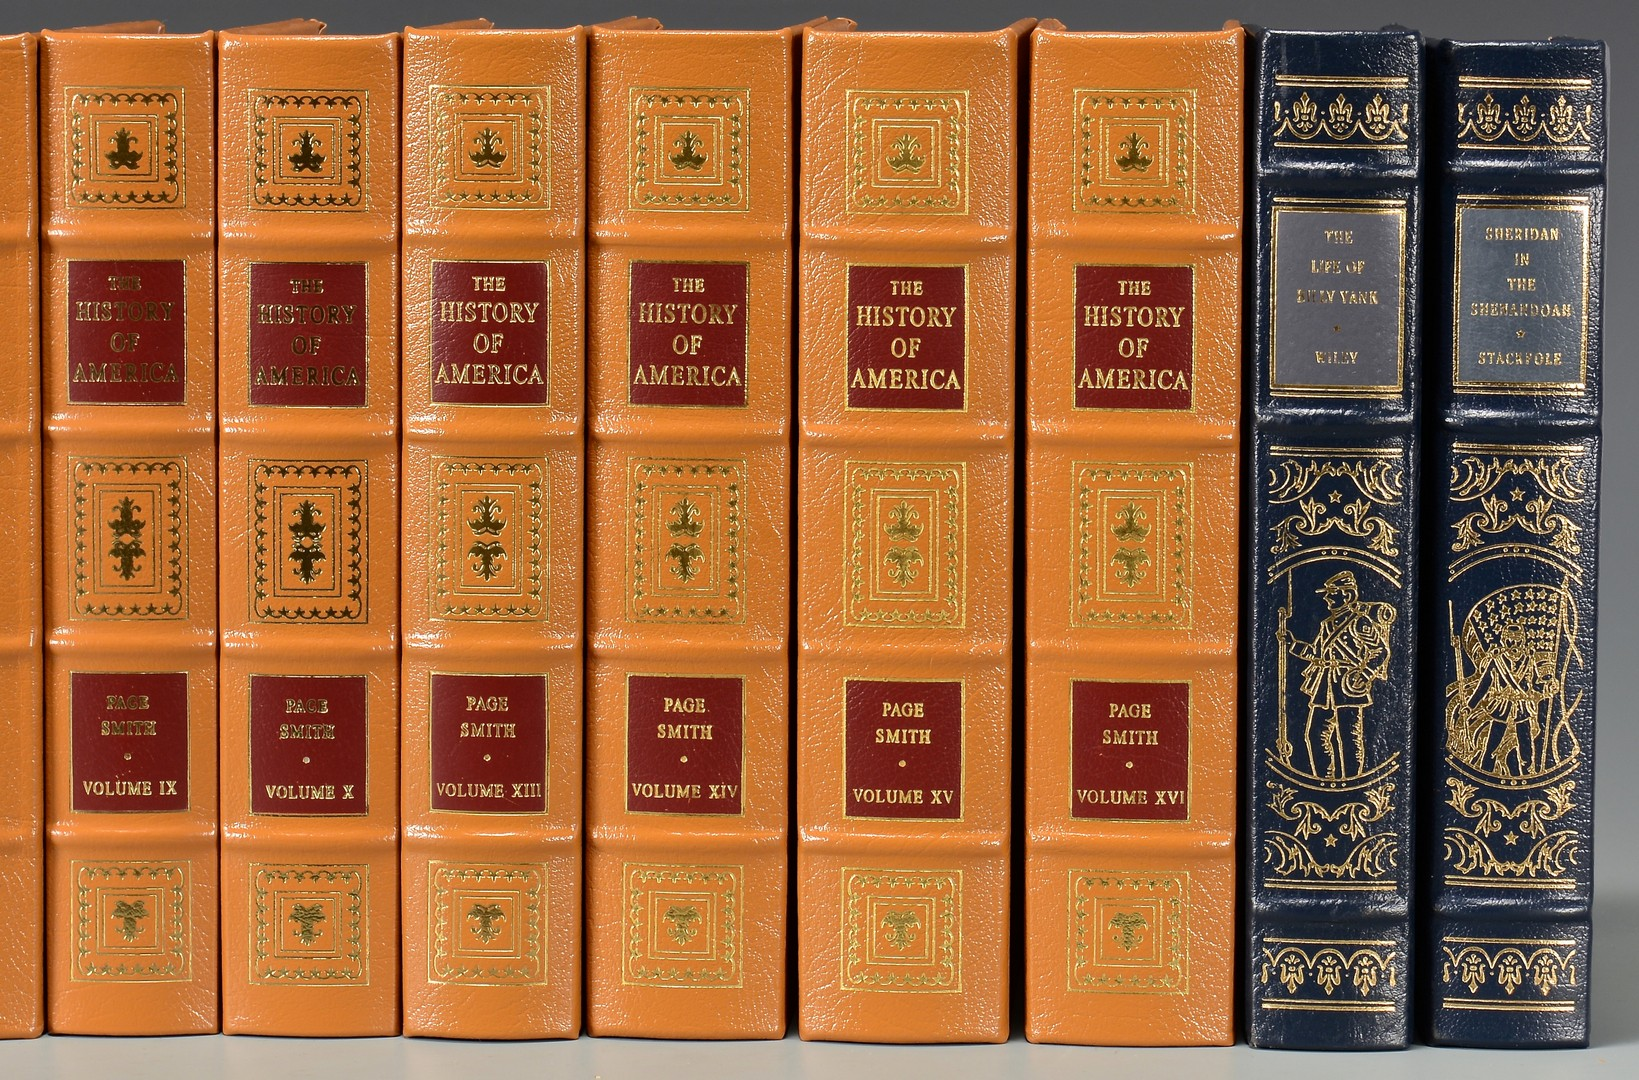 Lot 3832454: 16 Easton Press American History & Civil War Book